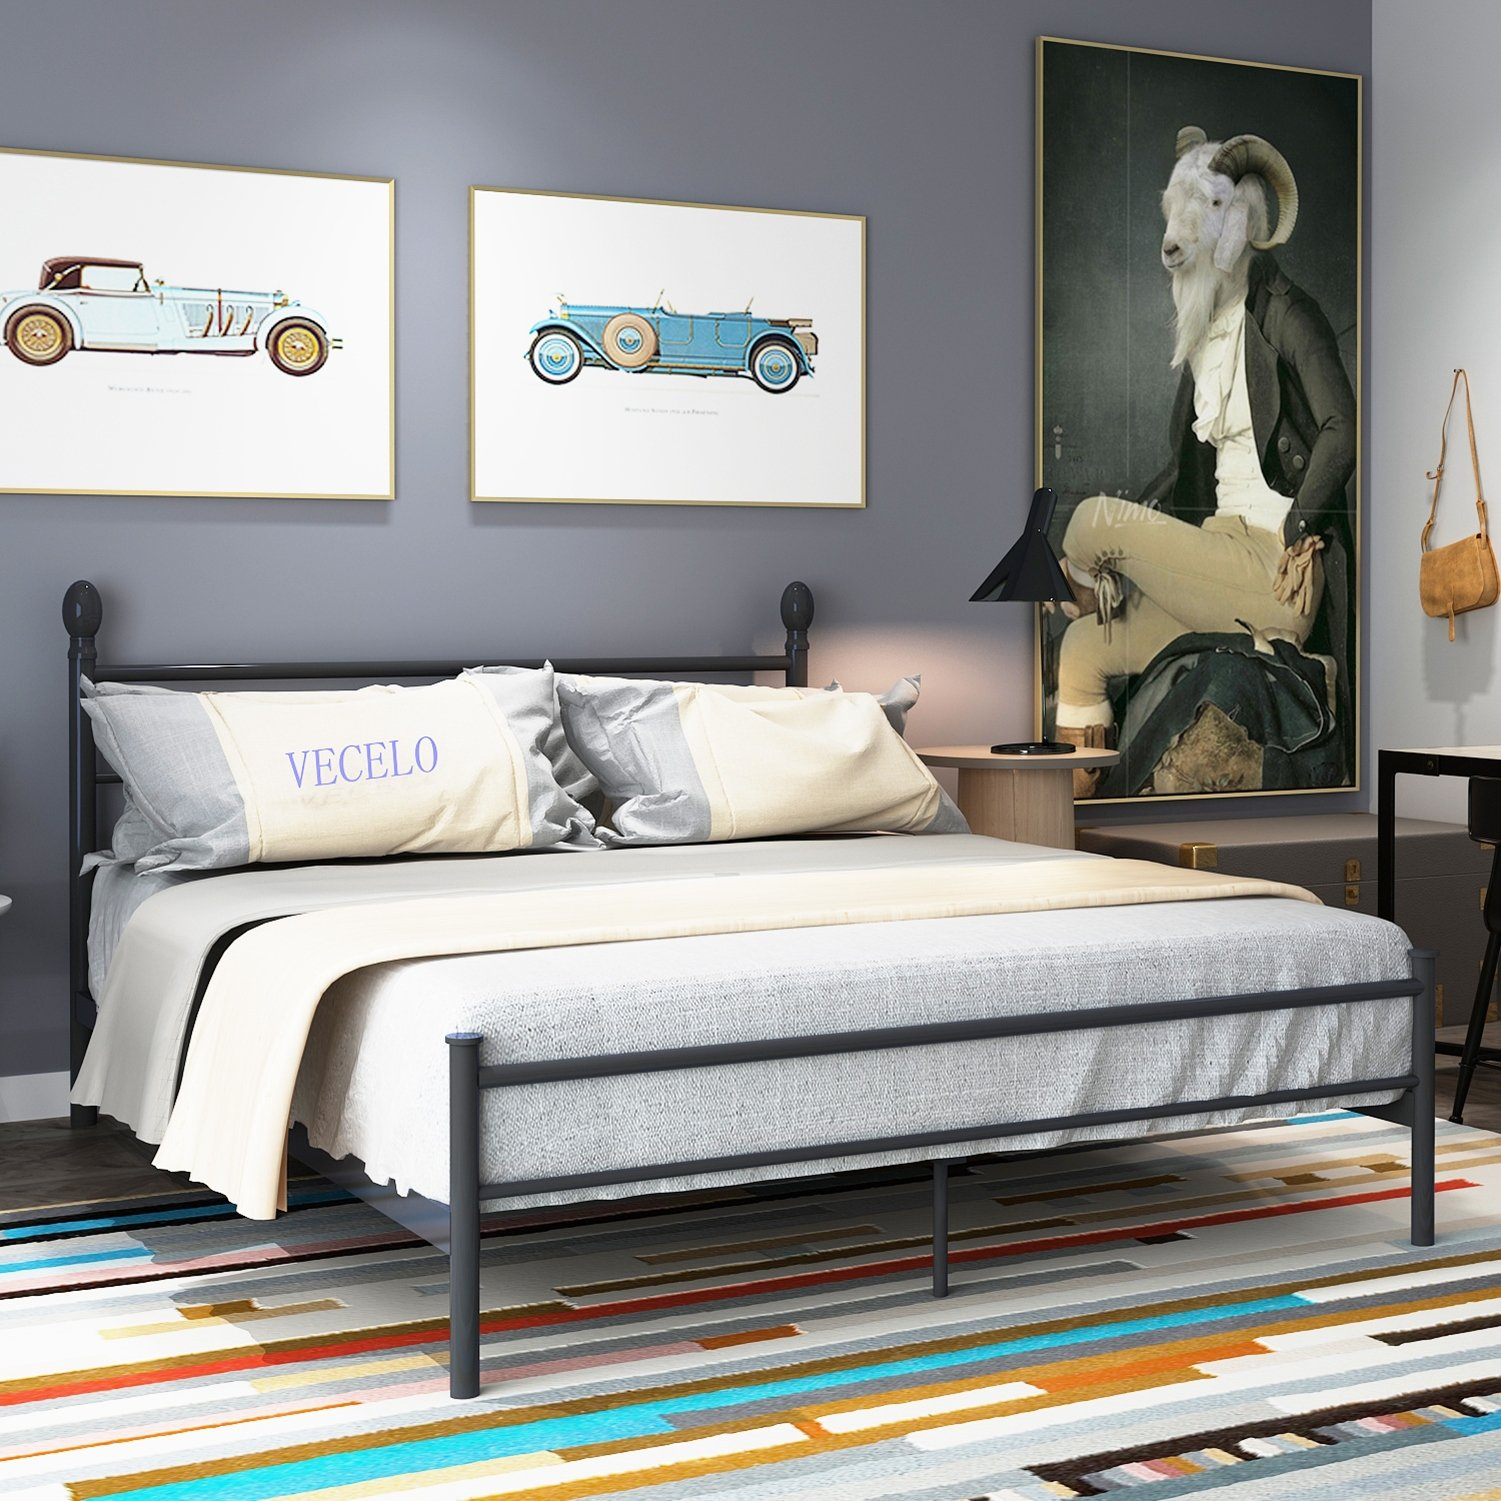 New Platform Bed Frame,Queen/Full Size Metal Beds Box Spring Replacement with Headboard